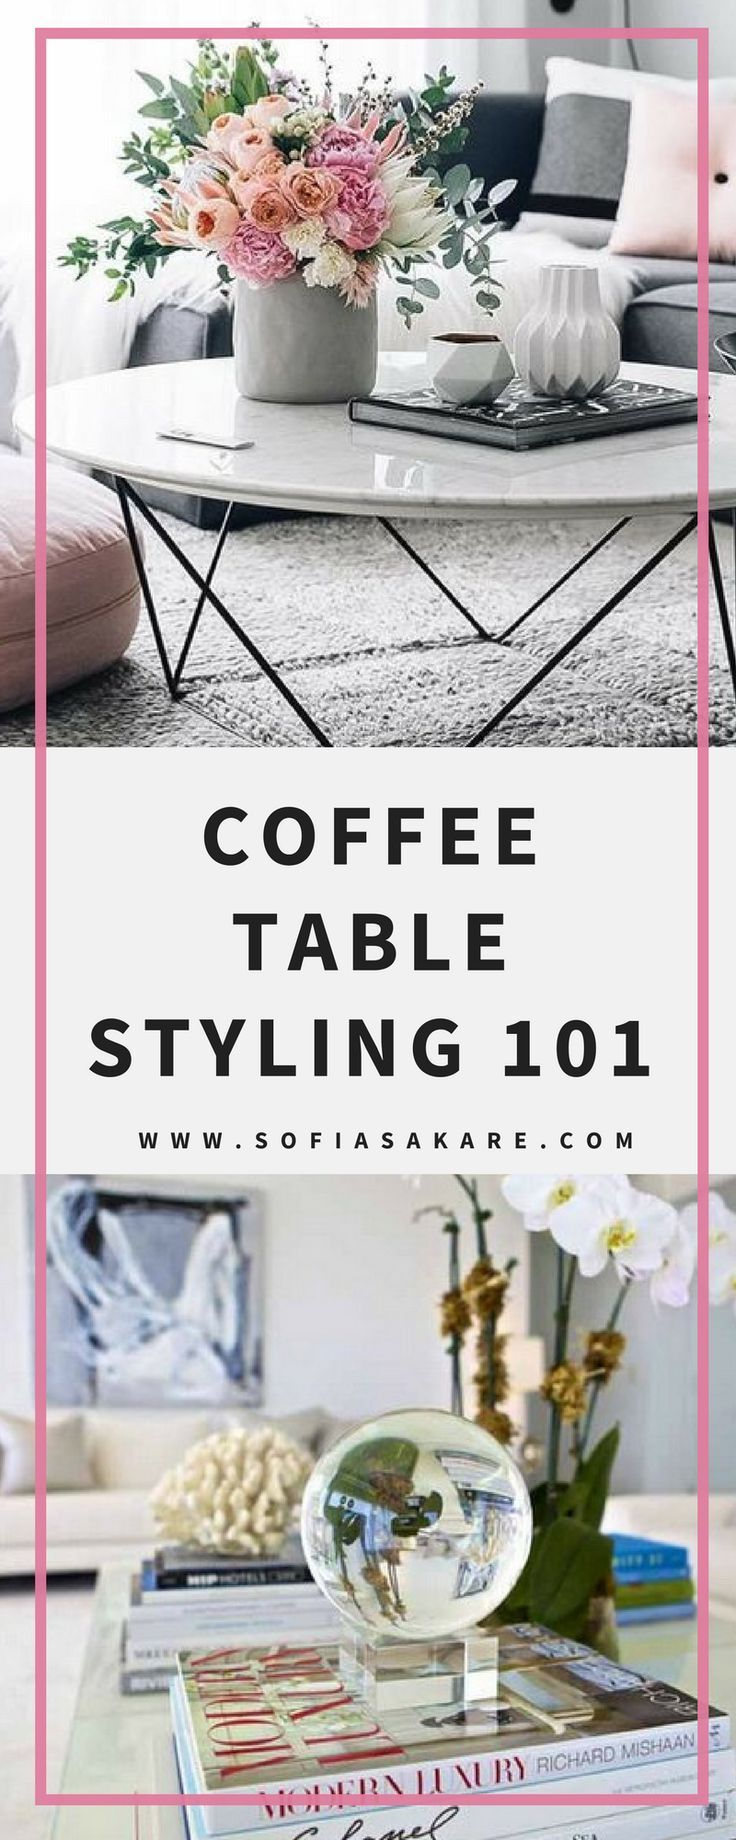 Coffee Table Styling 101: 6 Easy Steps to Coffee Table you'll Love